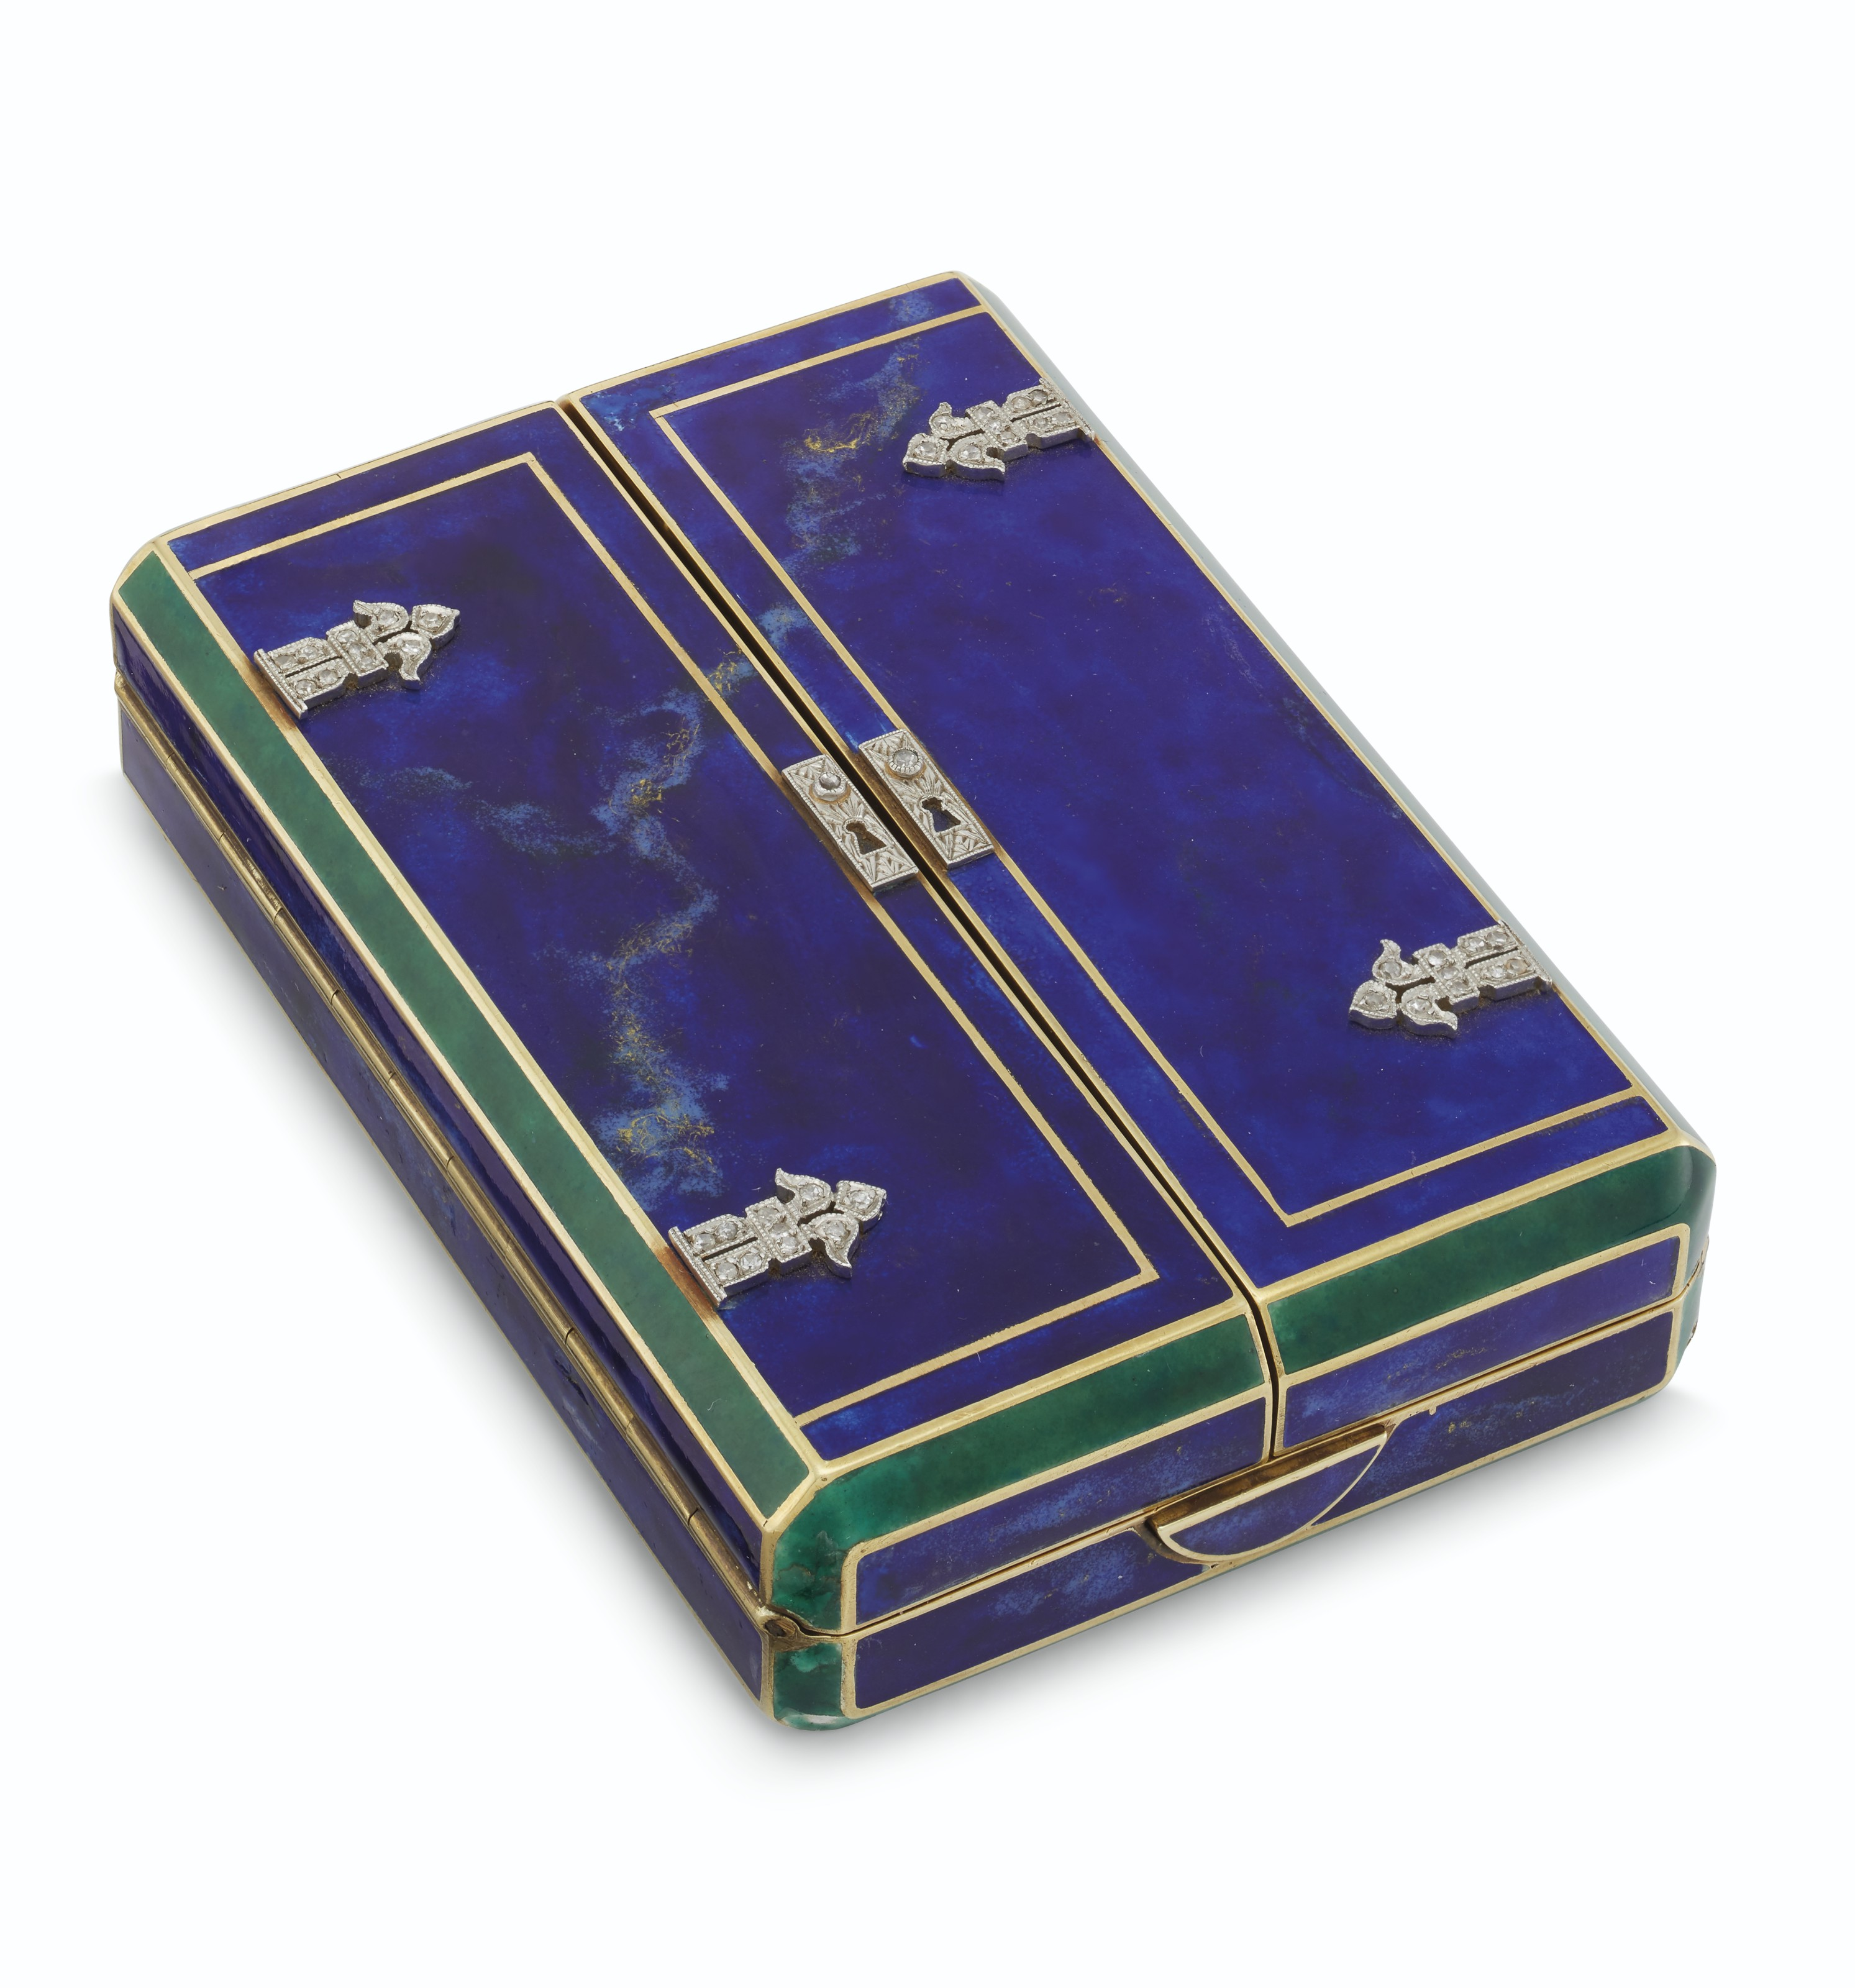 AN AMERICAN ART DECO GOLD, ENAMEL, AND DIAMOND VANITY CASE